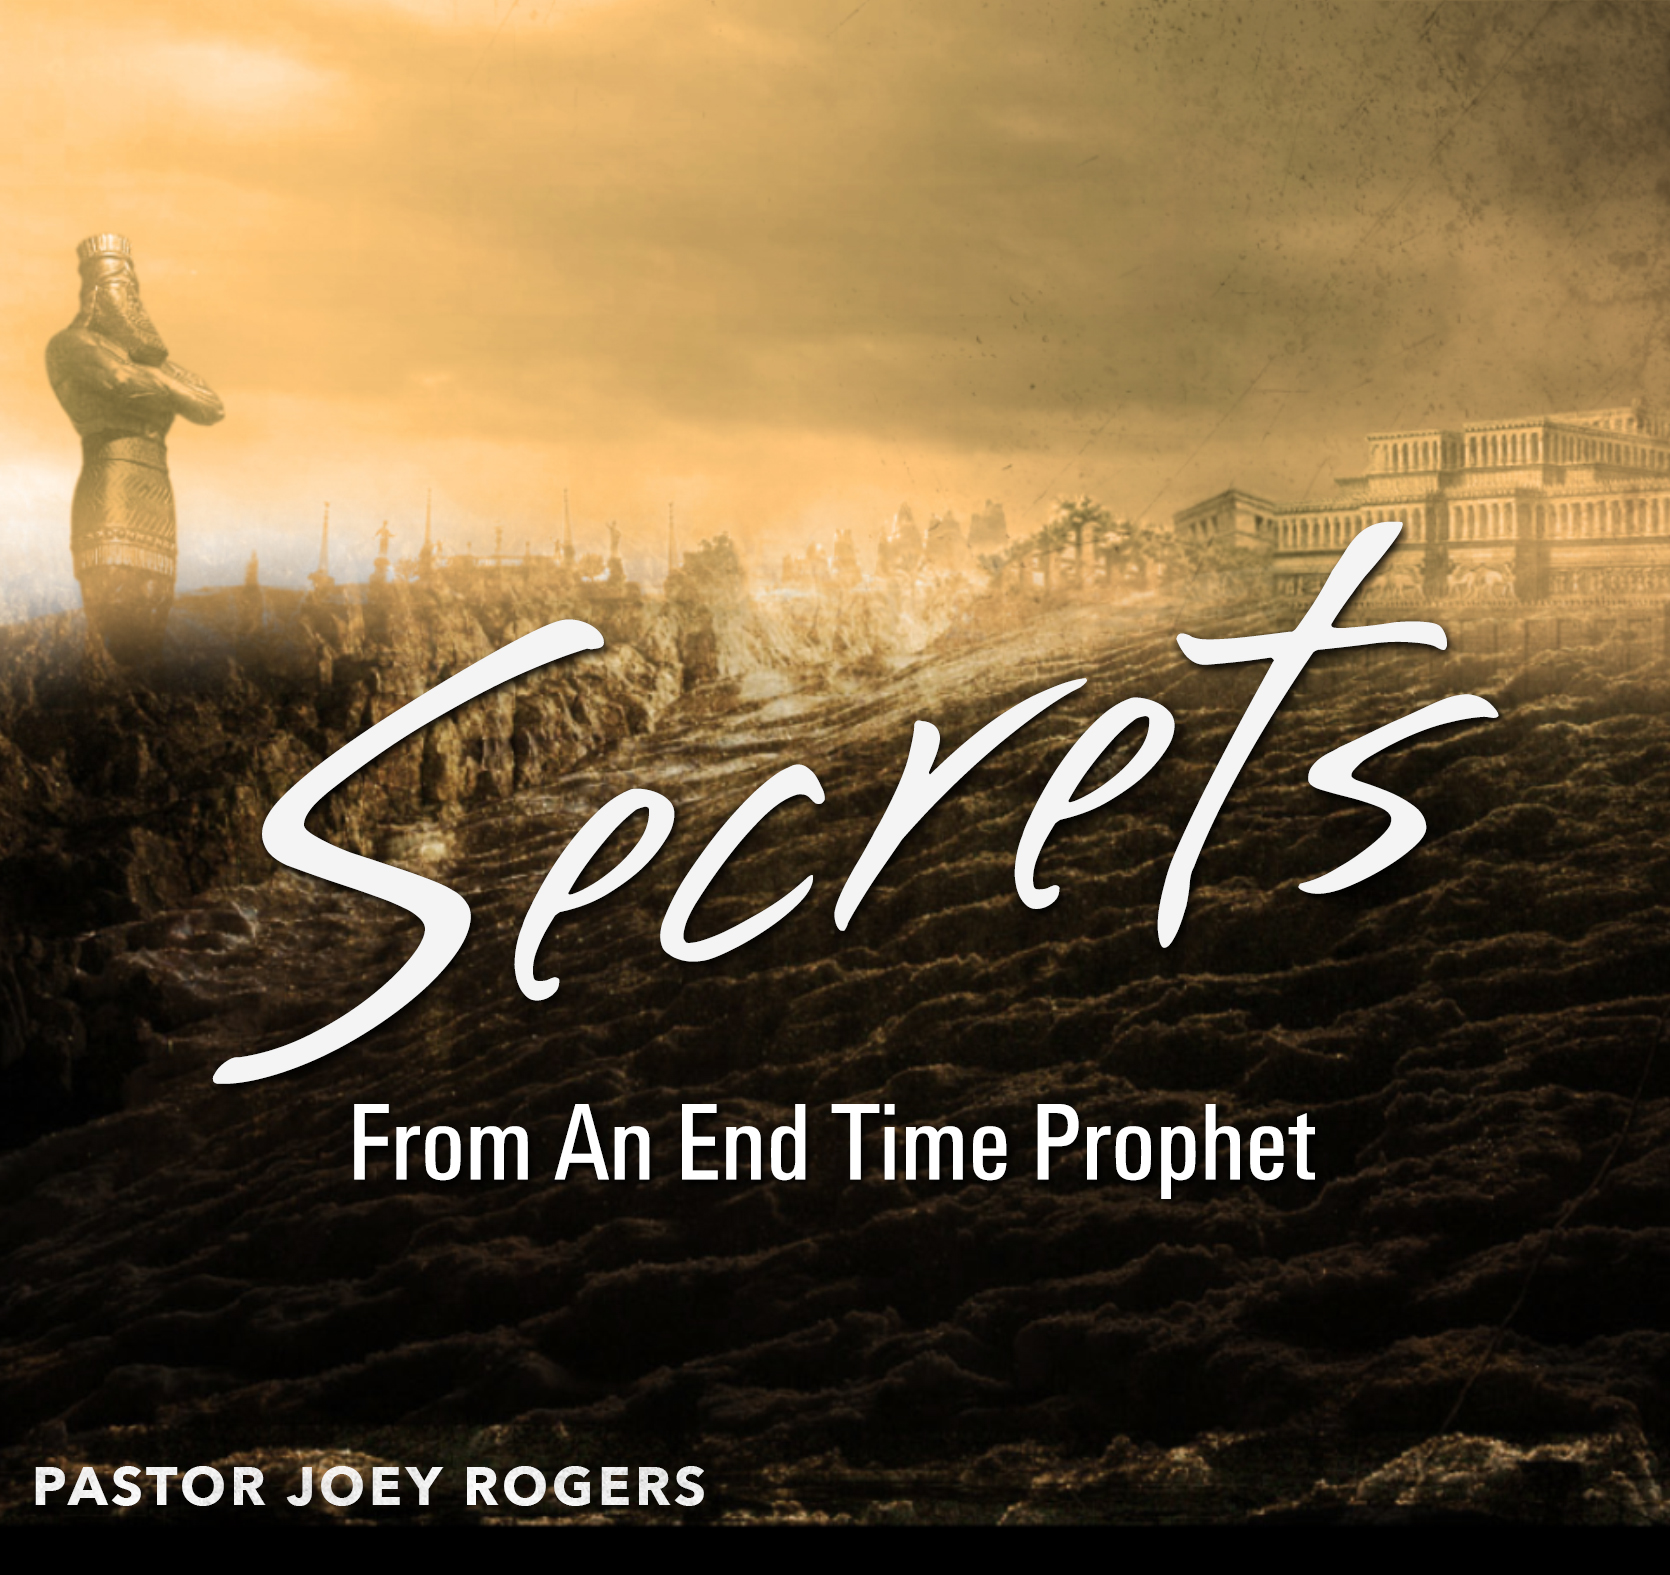 Secrets From An End-Time Prophet PROPHECY FILES